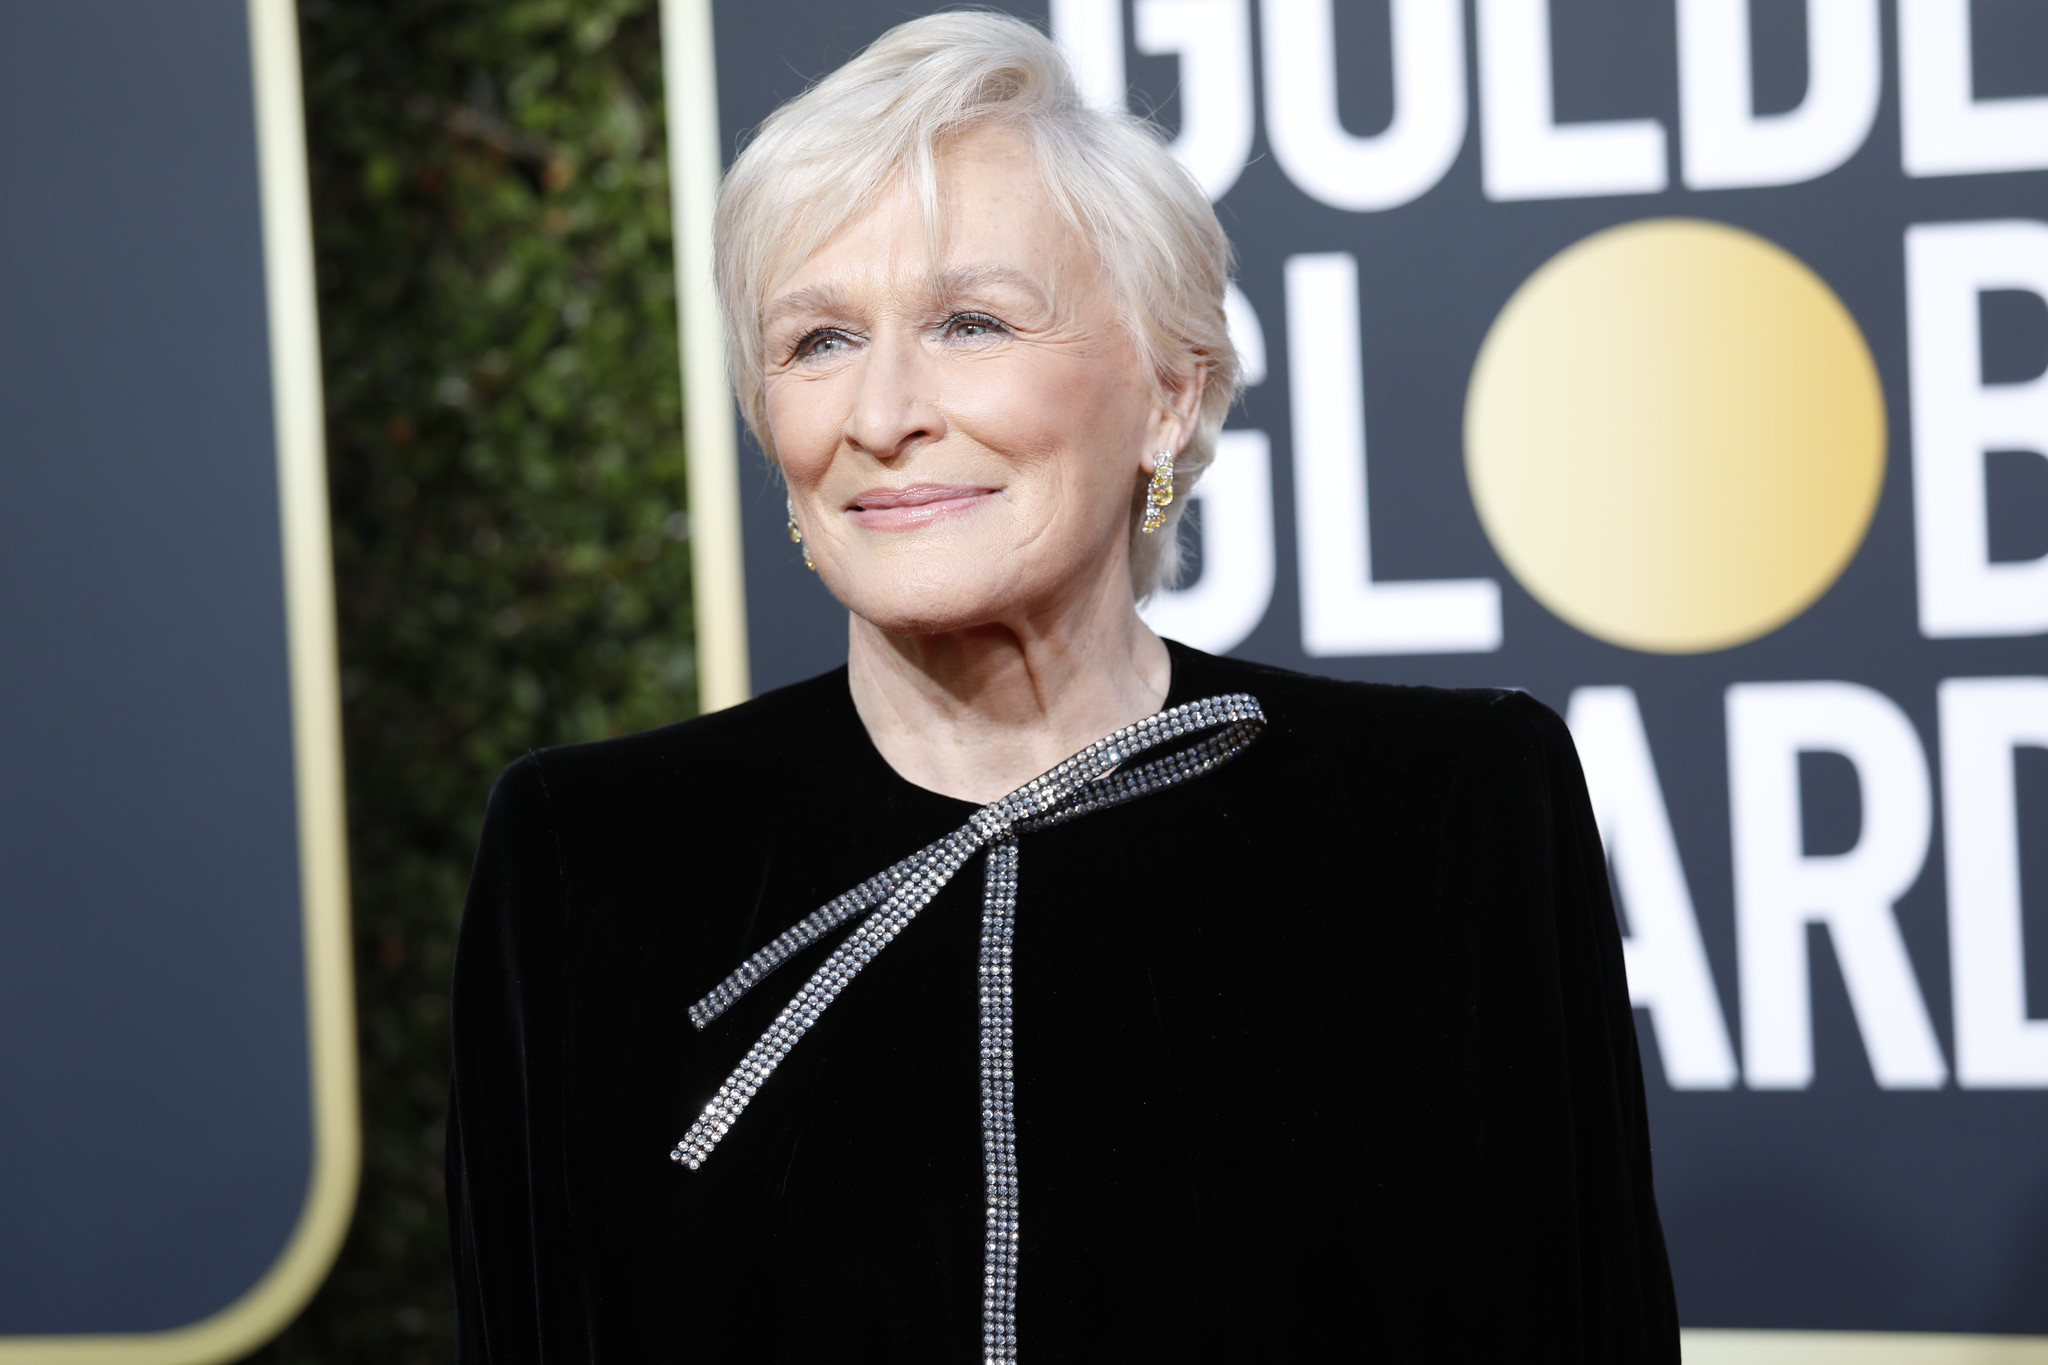 BEVERLY HILLS, CA-JANUARY 06: Glenn Close arriving at the 76th Golden Globes at the Beverly Hilton